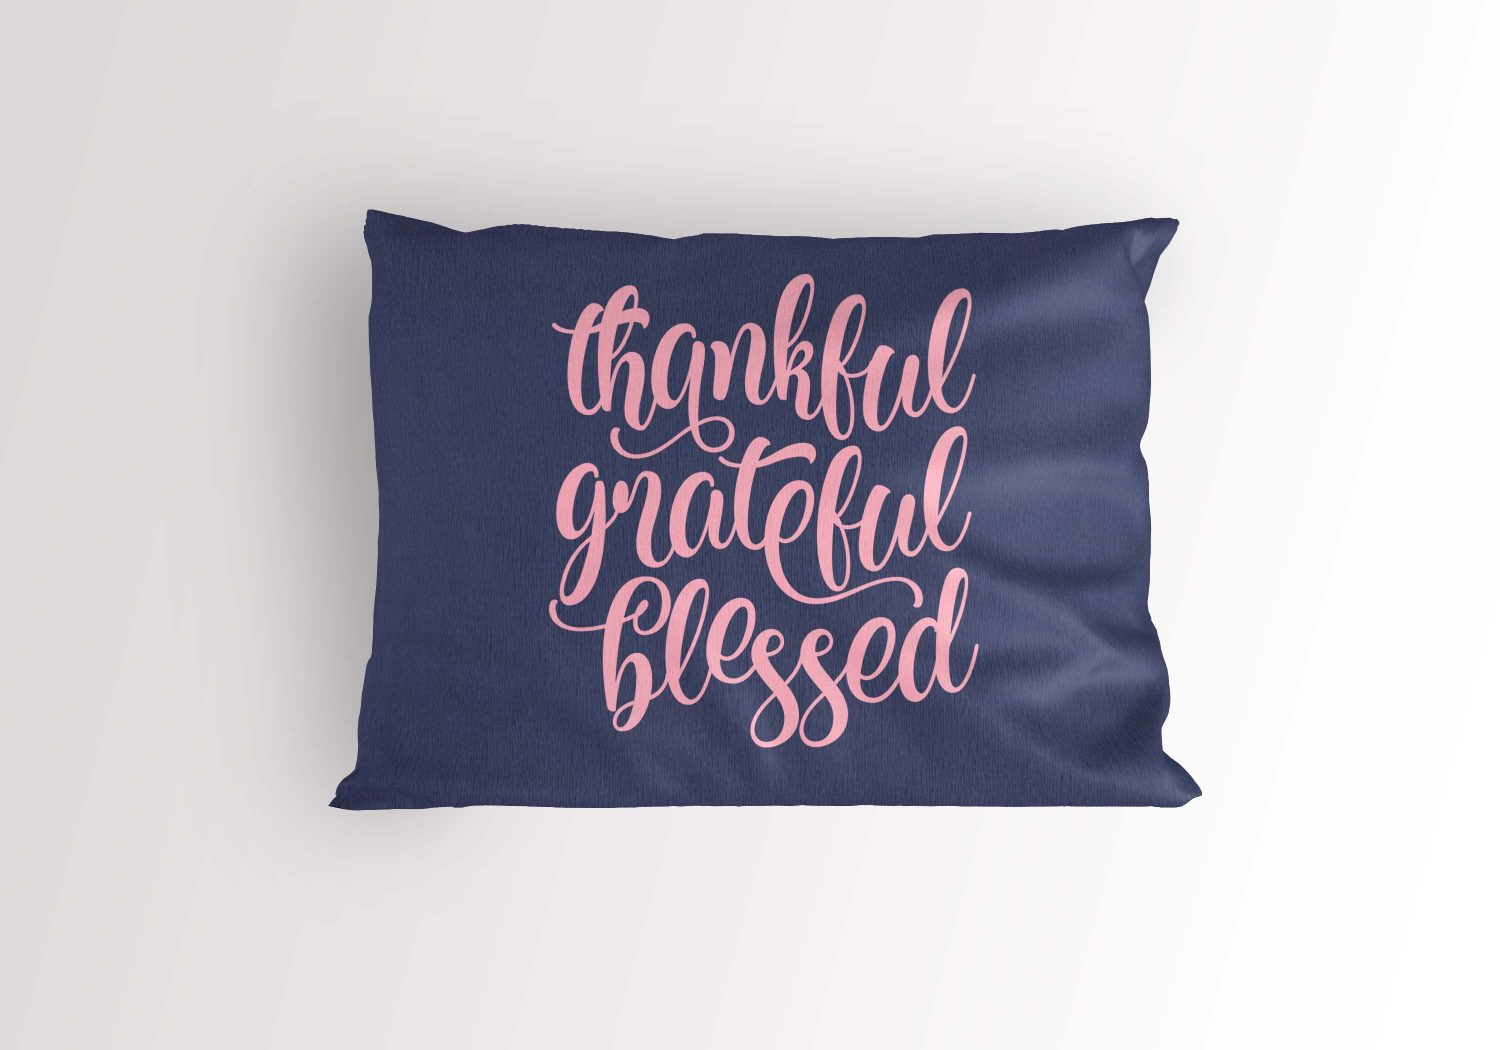 Download Thankful Grateful Blessed Cut File In Svg, Dxf, Png DXF